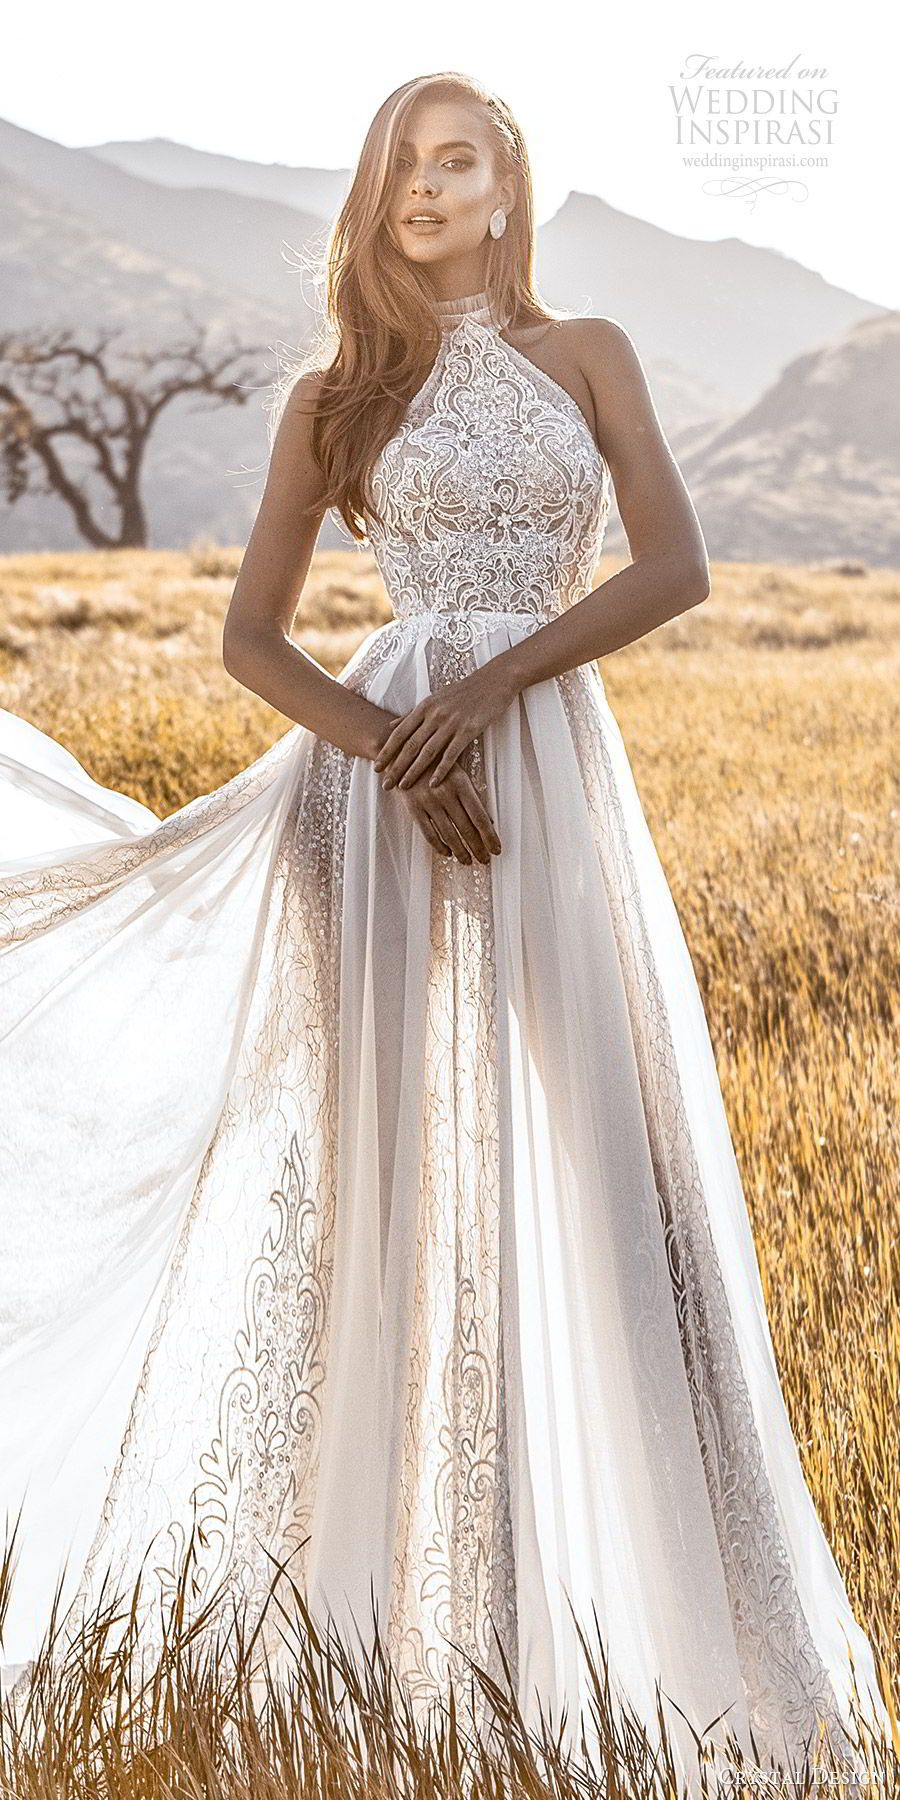 2020 New Fashion Dress Wedding Dresses Western Formal Wear For Ladies South African Traditional Wedding Dresses Purple And White Wedding Dress Wedding Matron Outfits